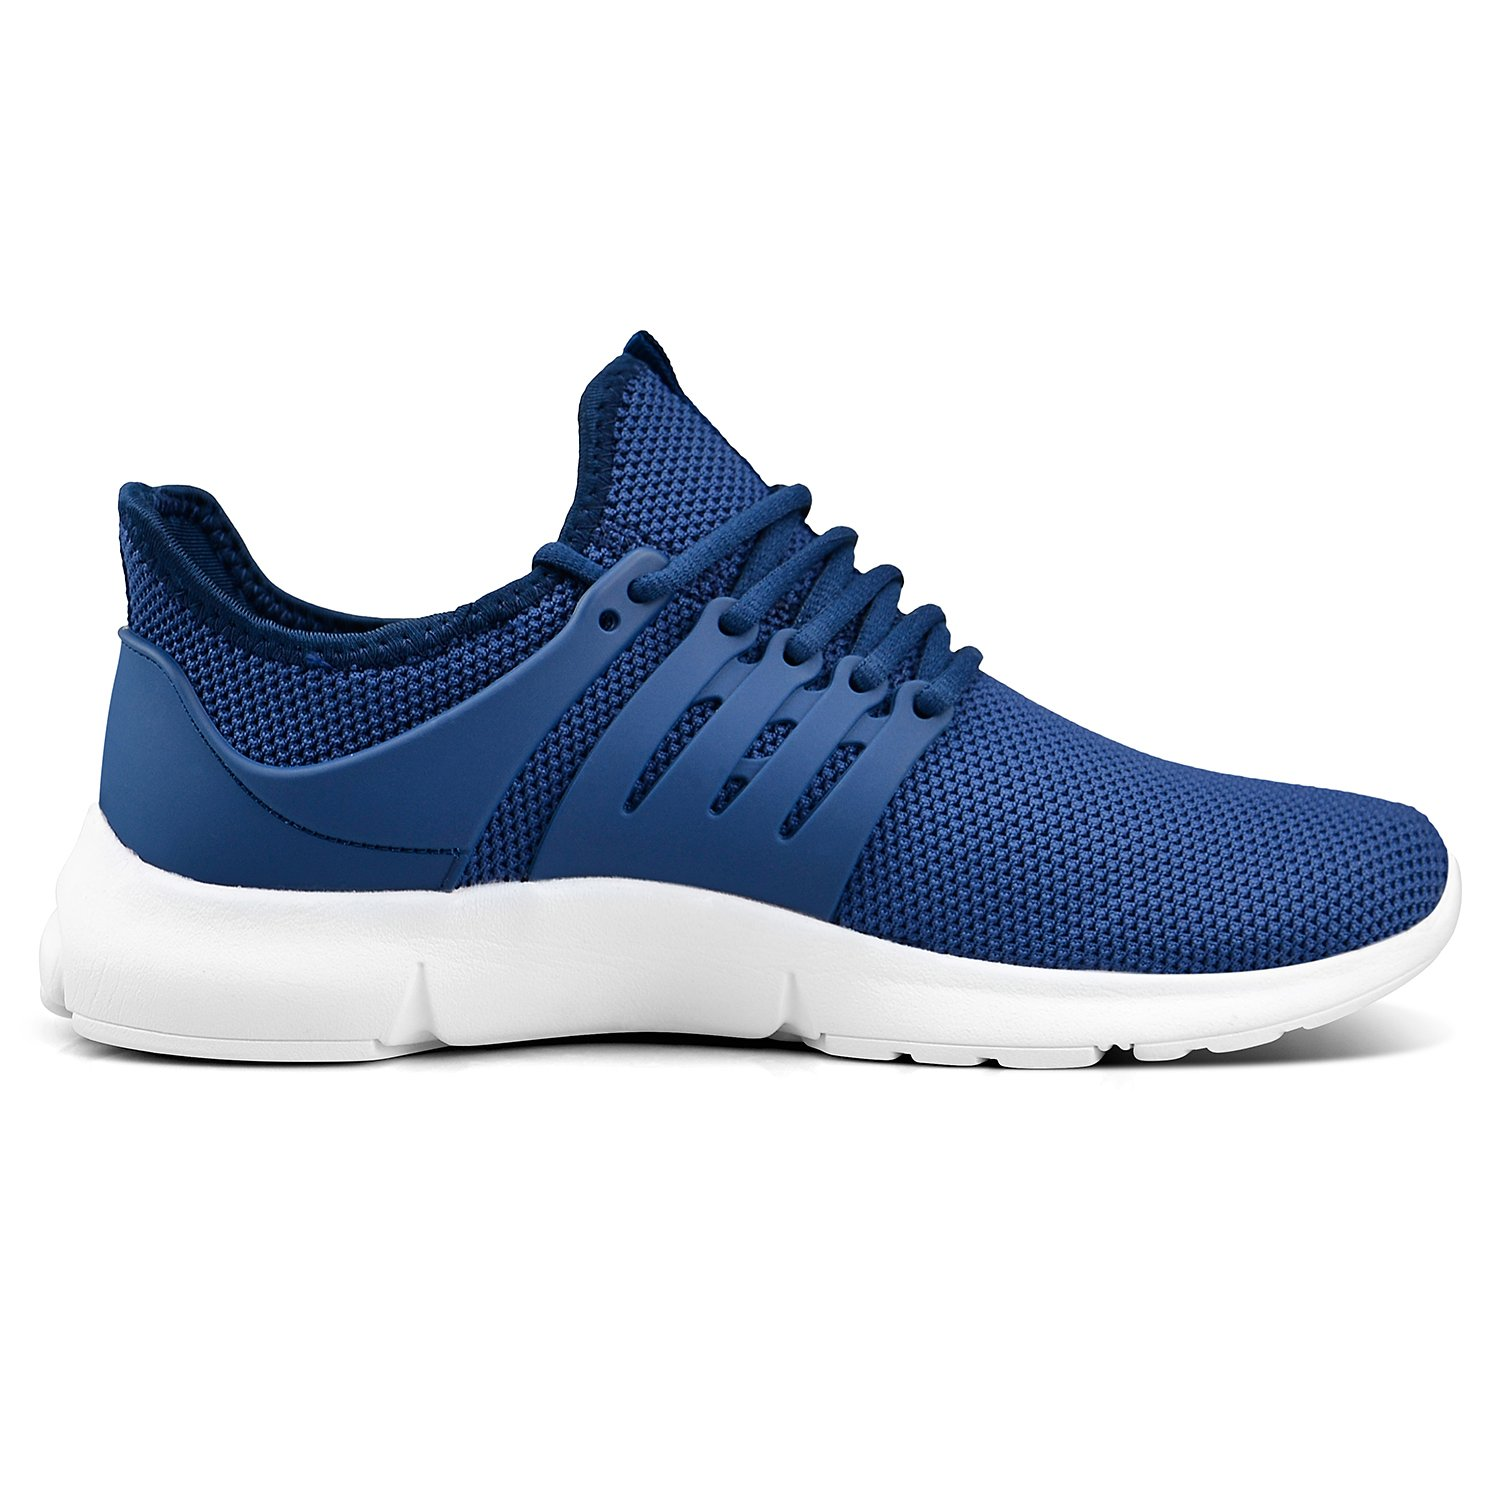 Feetmat Womens Running Shoes Fashion Sneakers Mesh Lightweight Breathable Casual Walking Shoes B07D4DFDTG 11 B(M) US|Blue/White